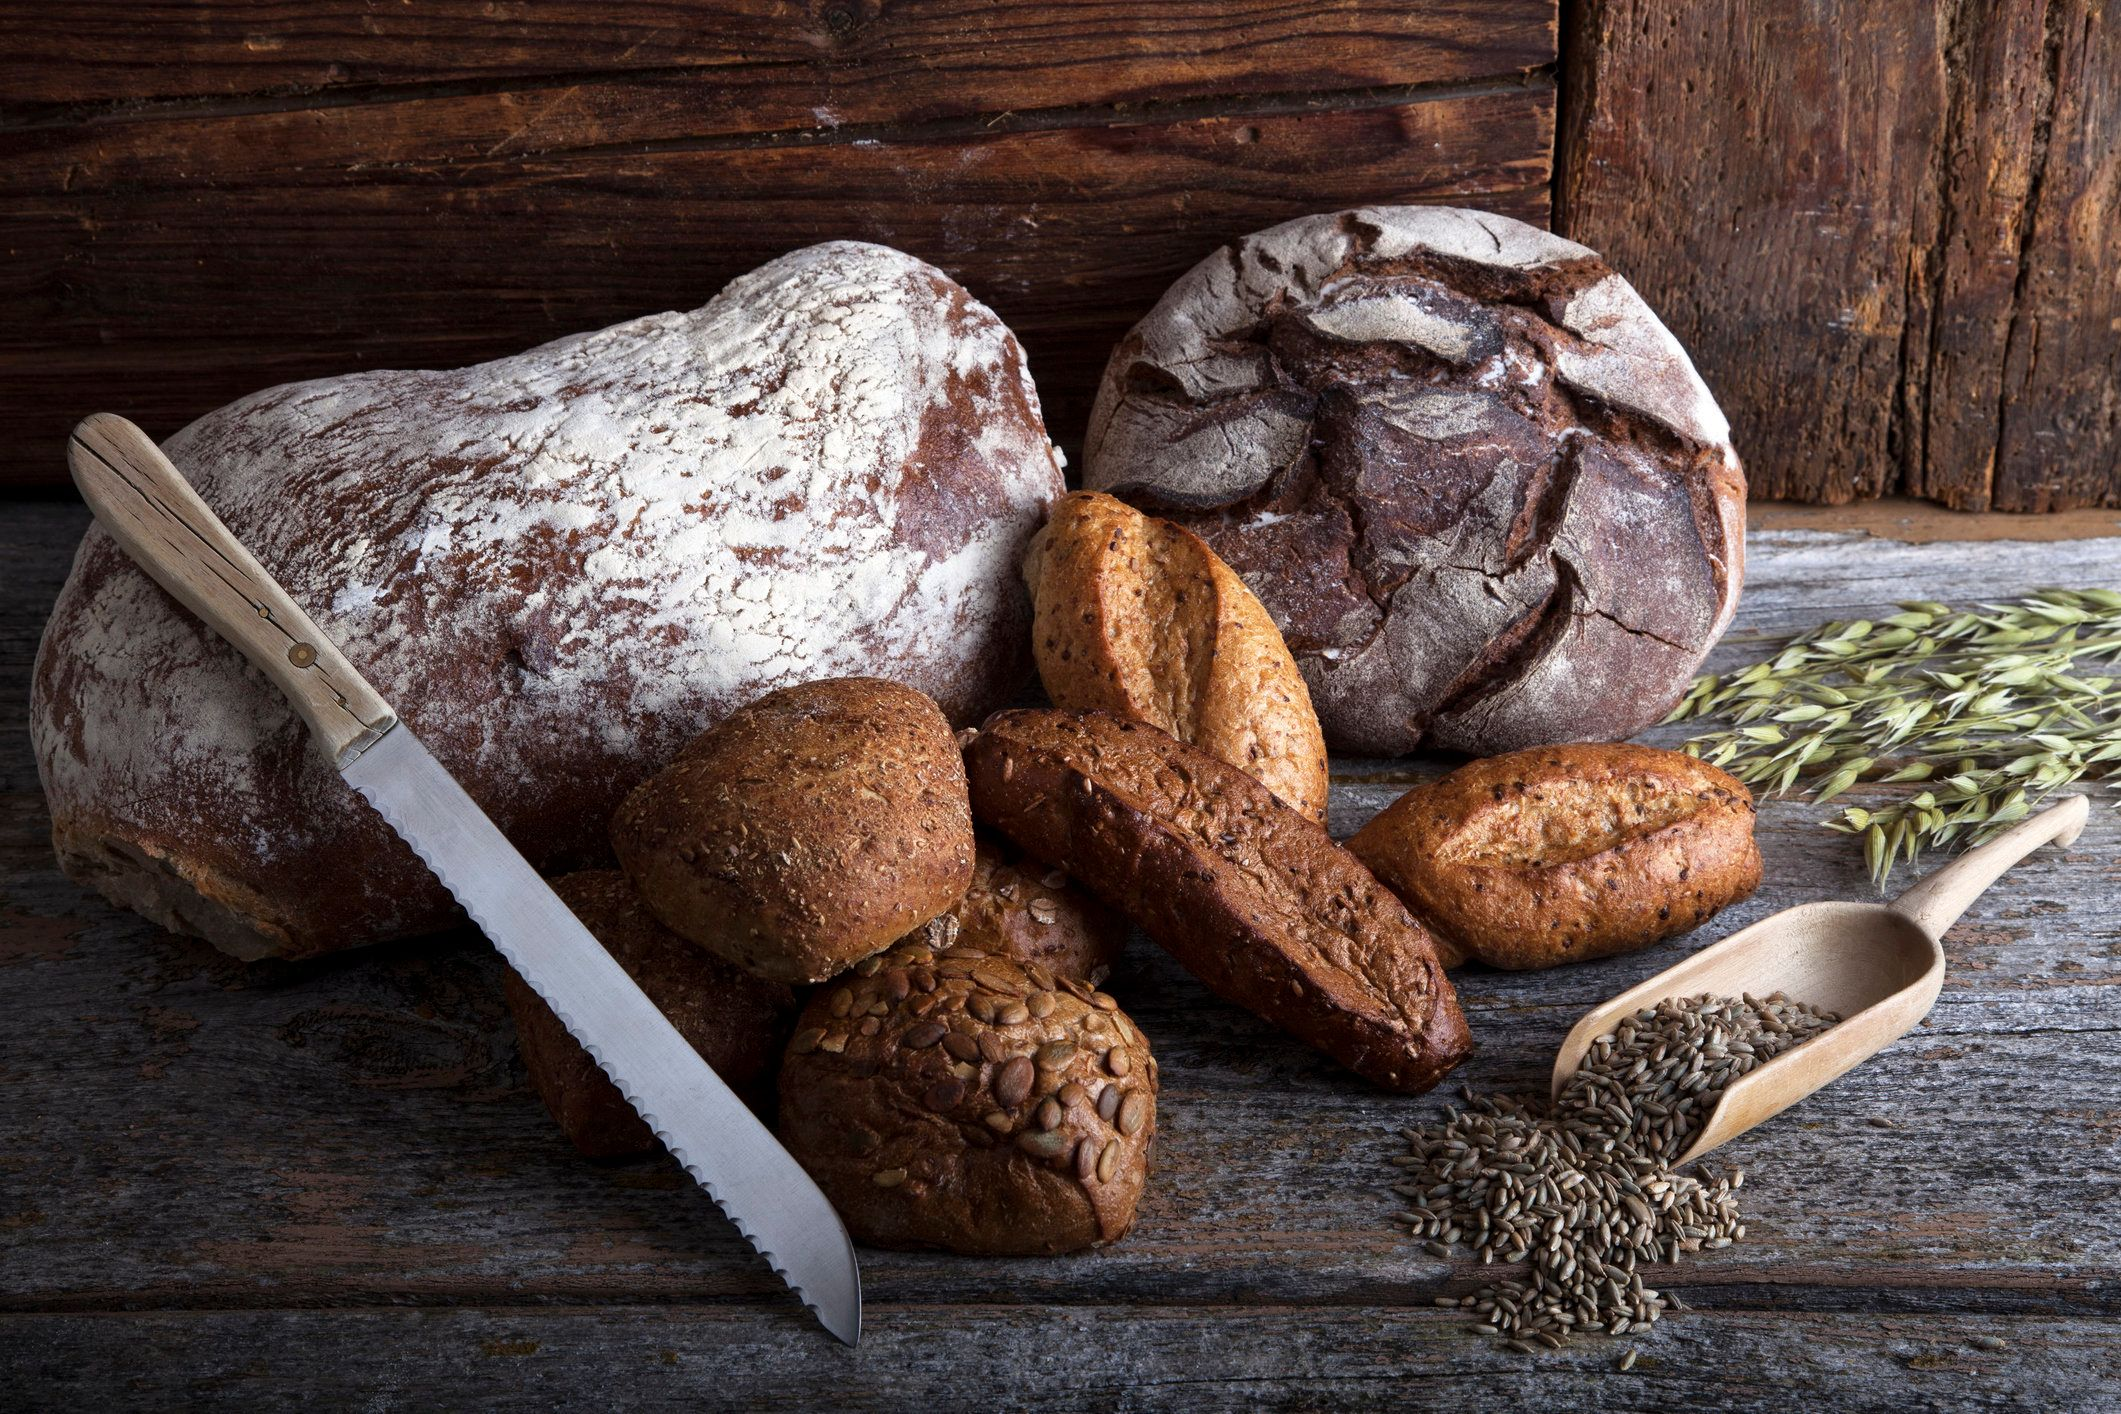 The percentage of Americans who follow a gluten-free diet is more than three times higher than the percentage of Americans with celiac disease.